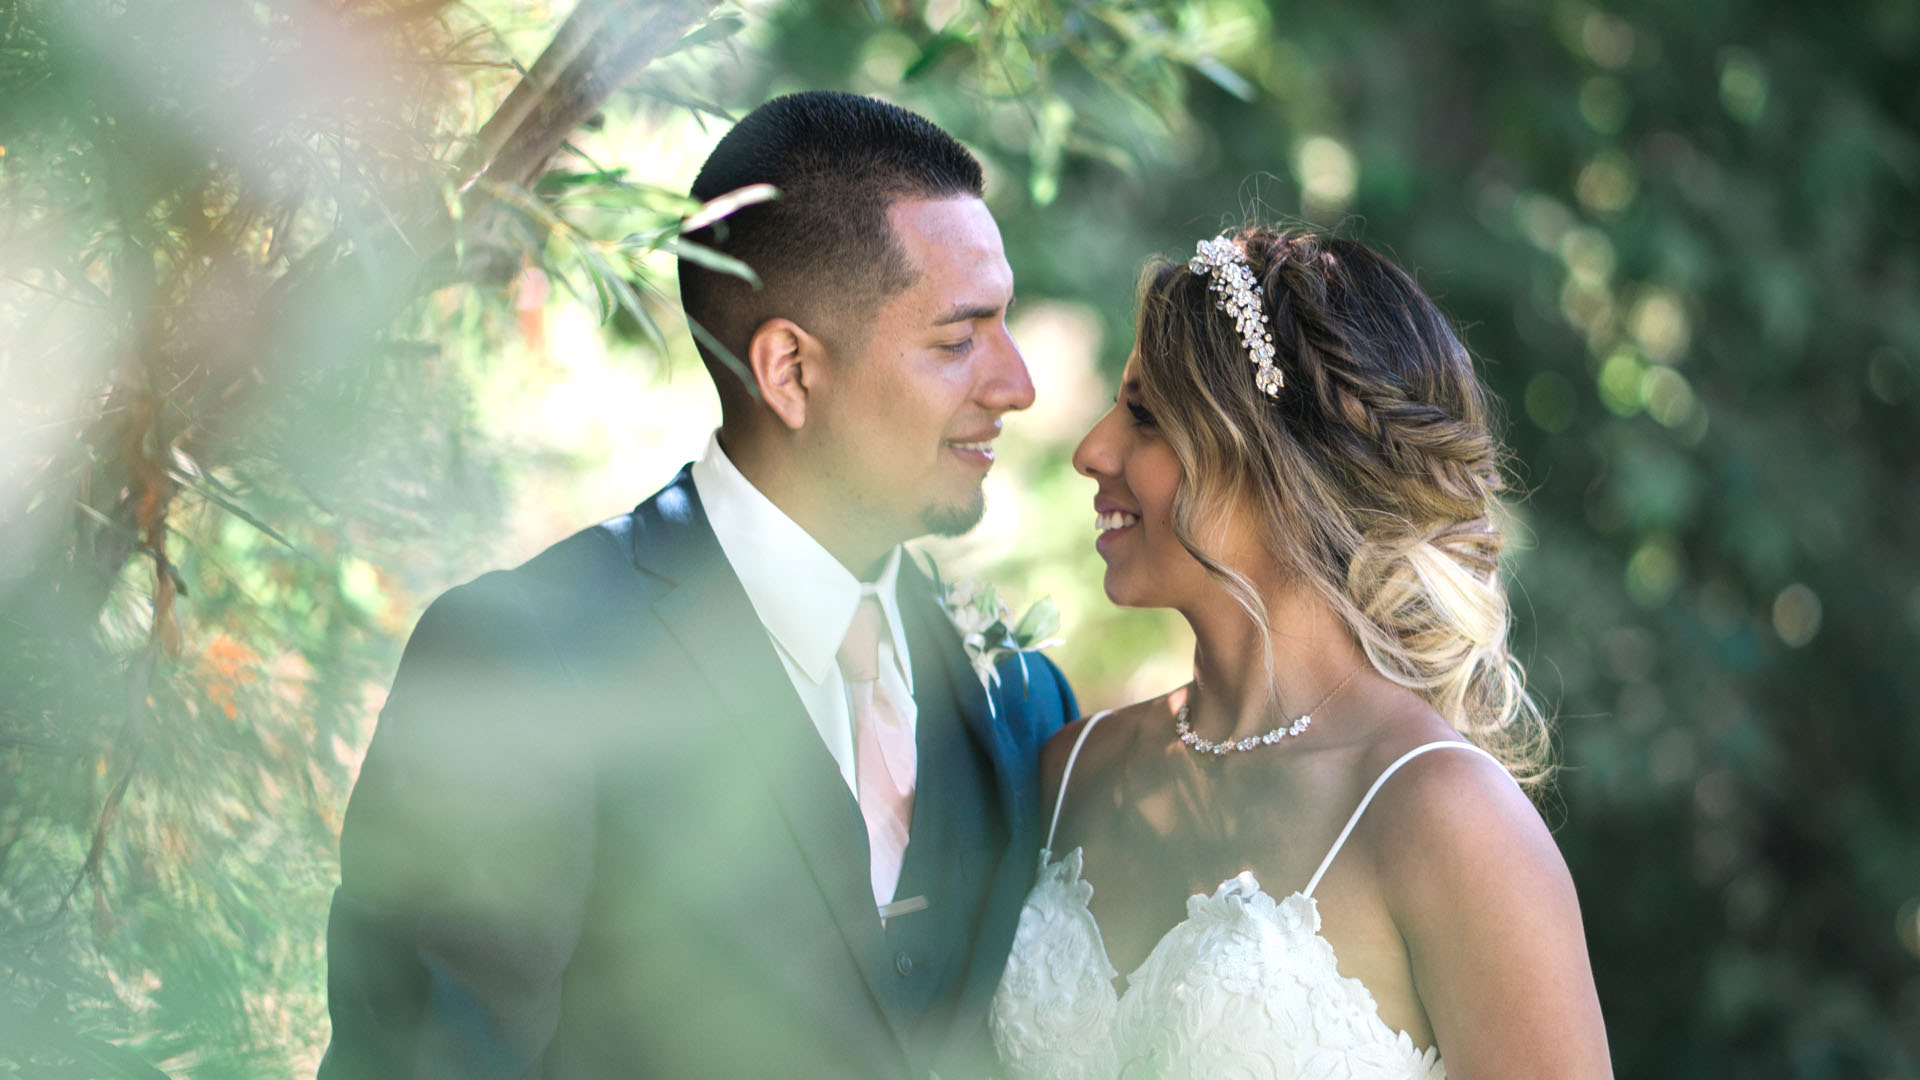 Isaias + Erika | Oceanside, California | QLN Conference Center